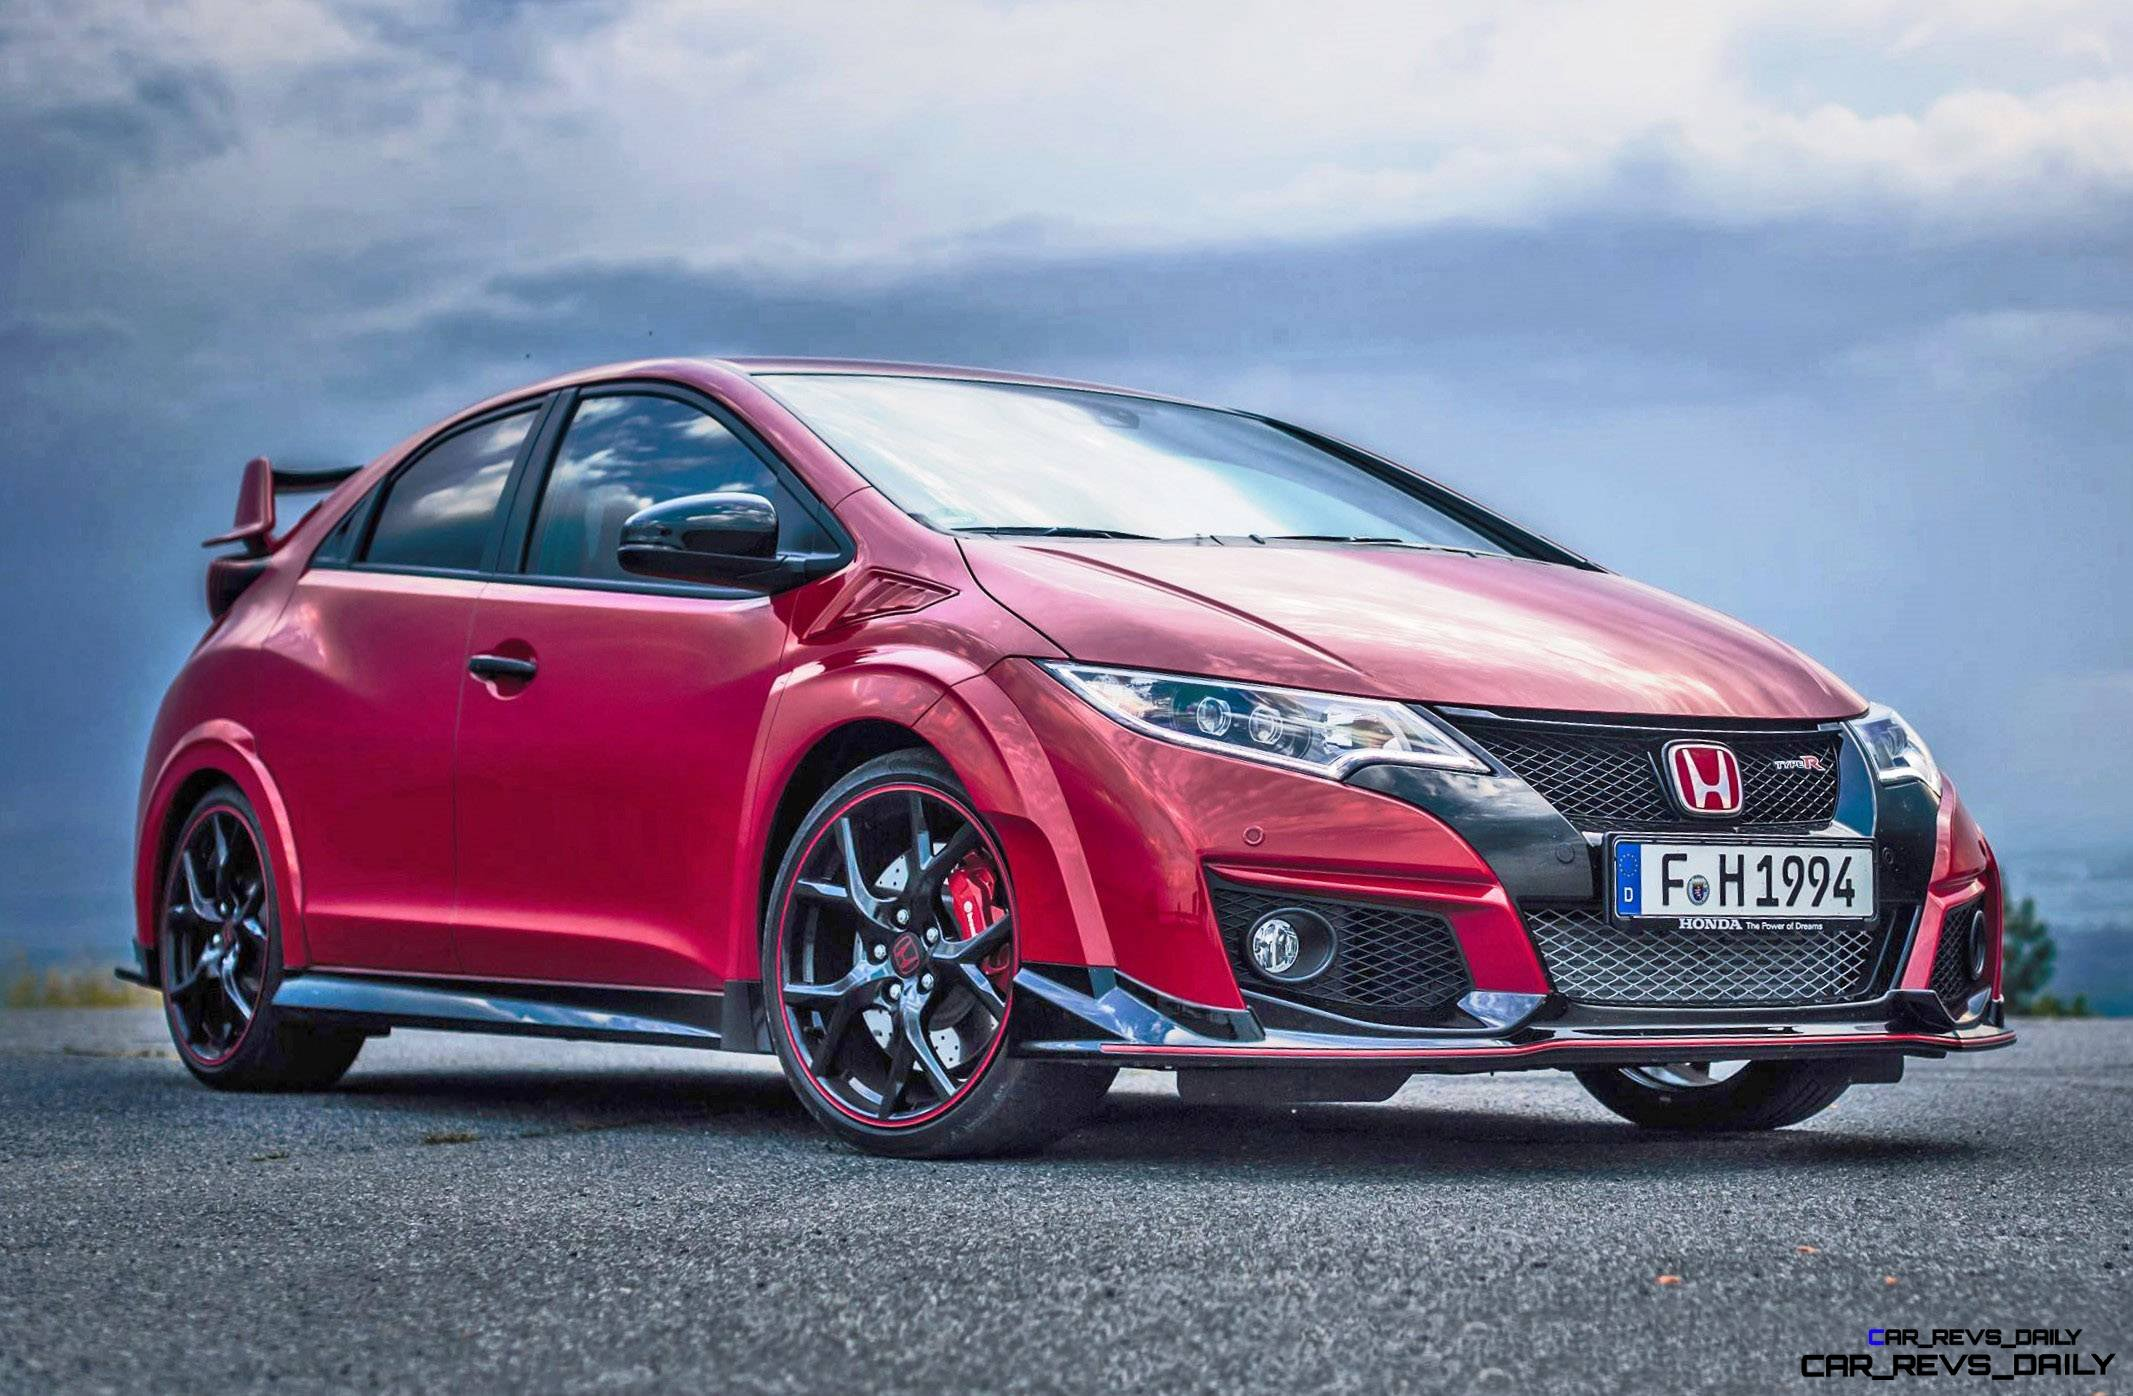 2015 honda civic type r european launch gallery in 104. Black Bedroom Furniture Sets. Home Design Ideas